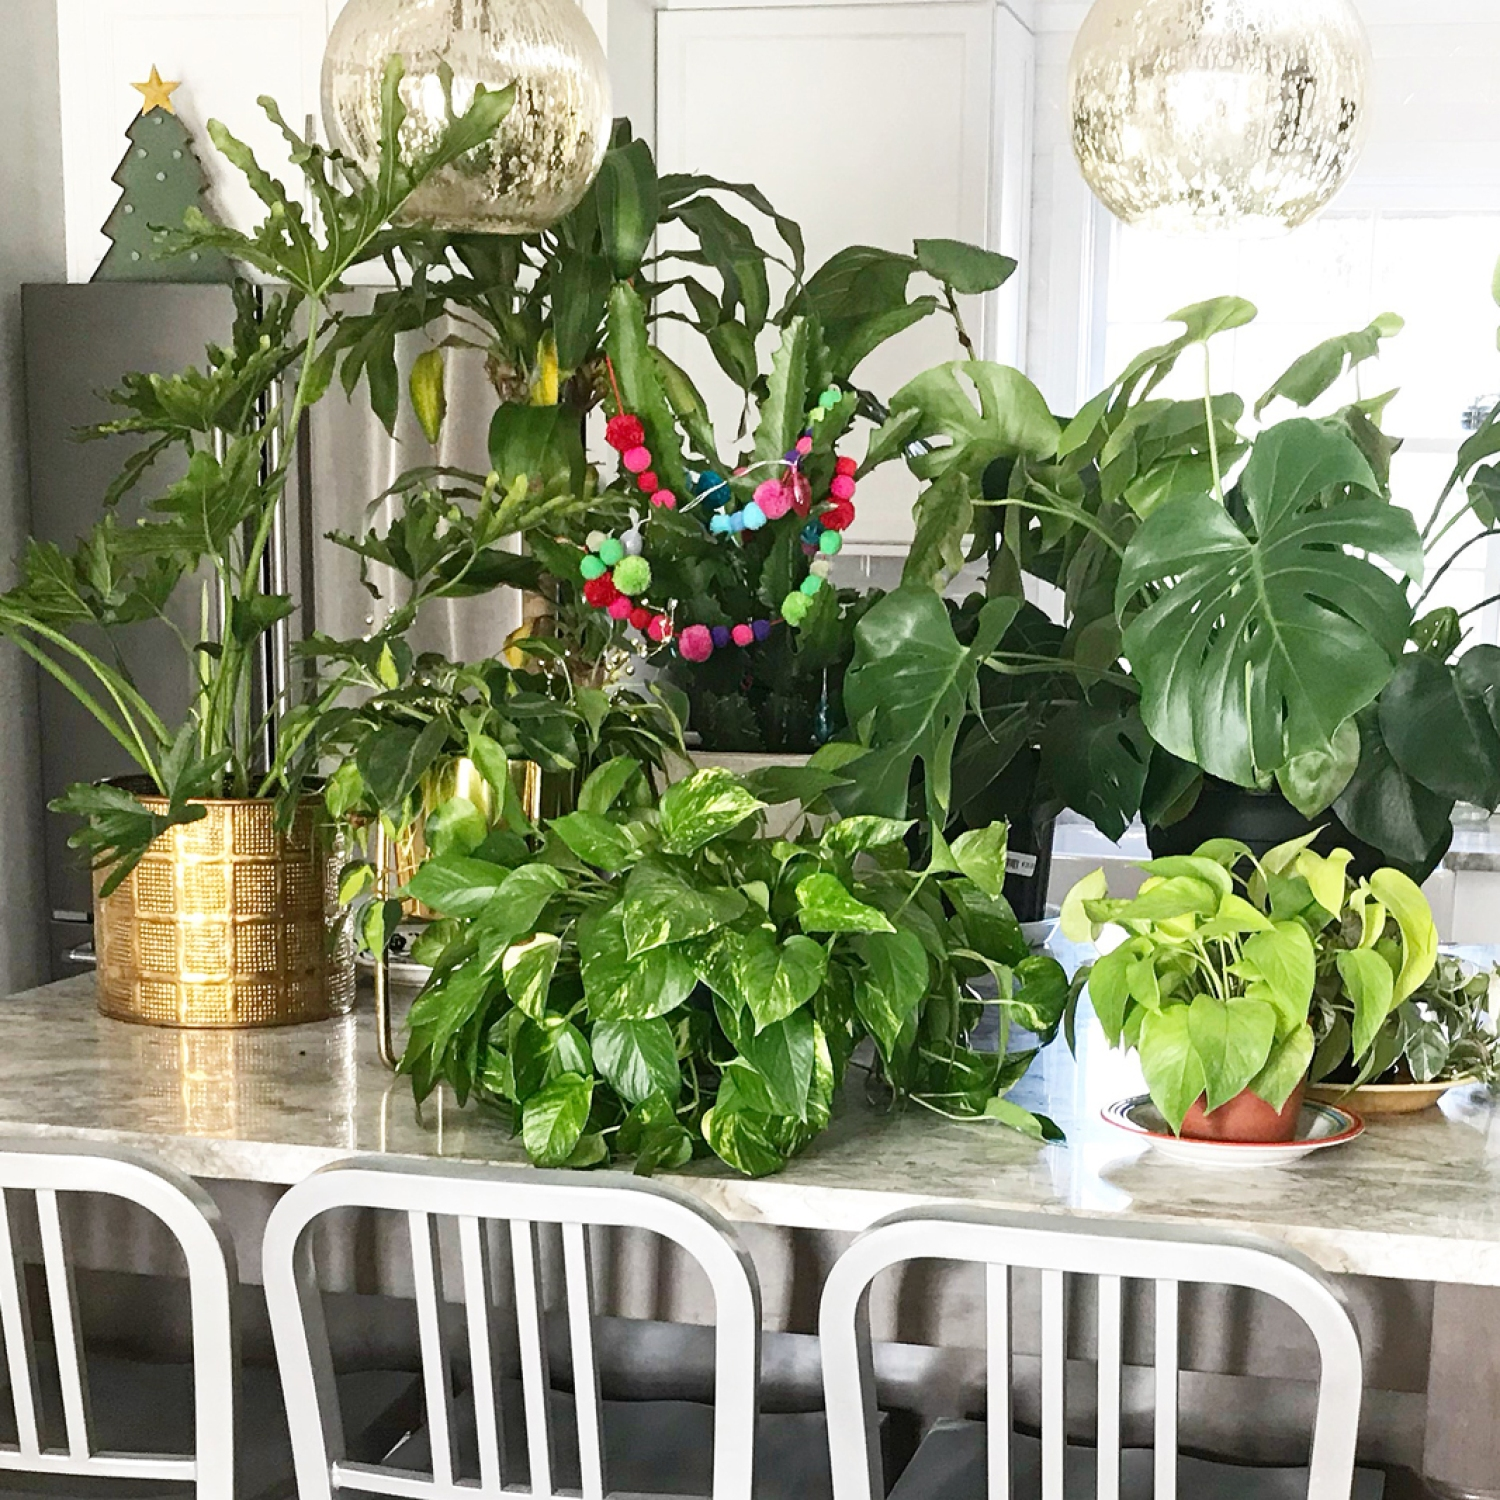 A few houseplants on a marble kitchen countertop